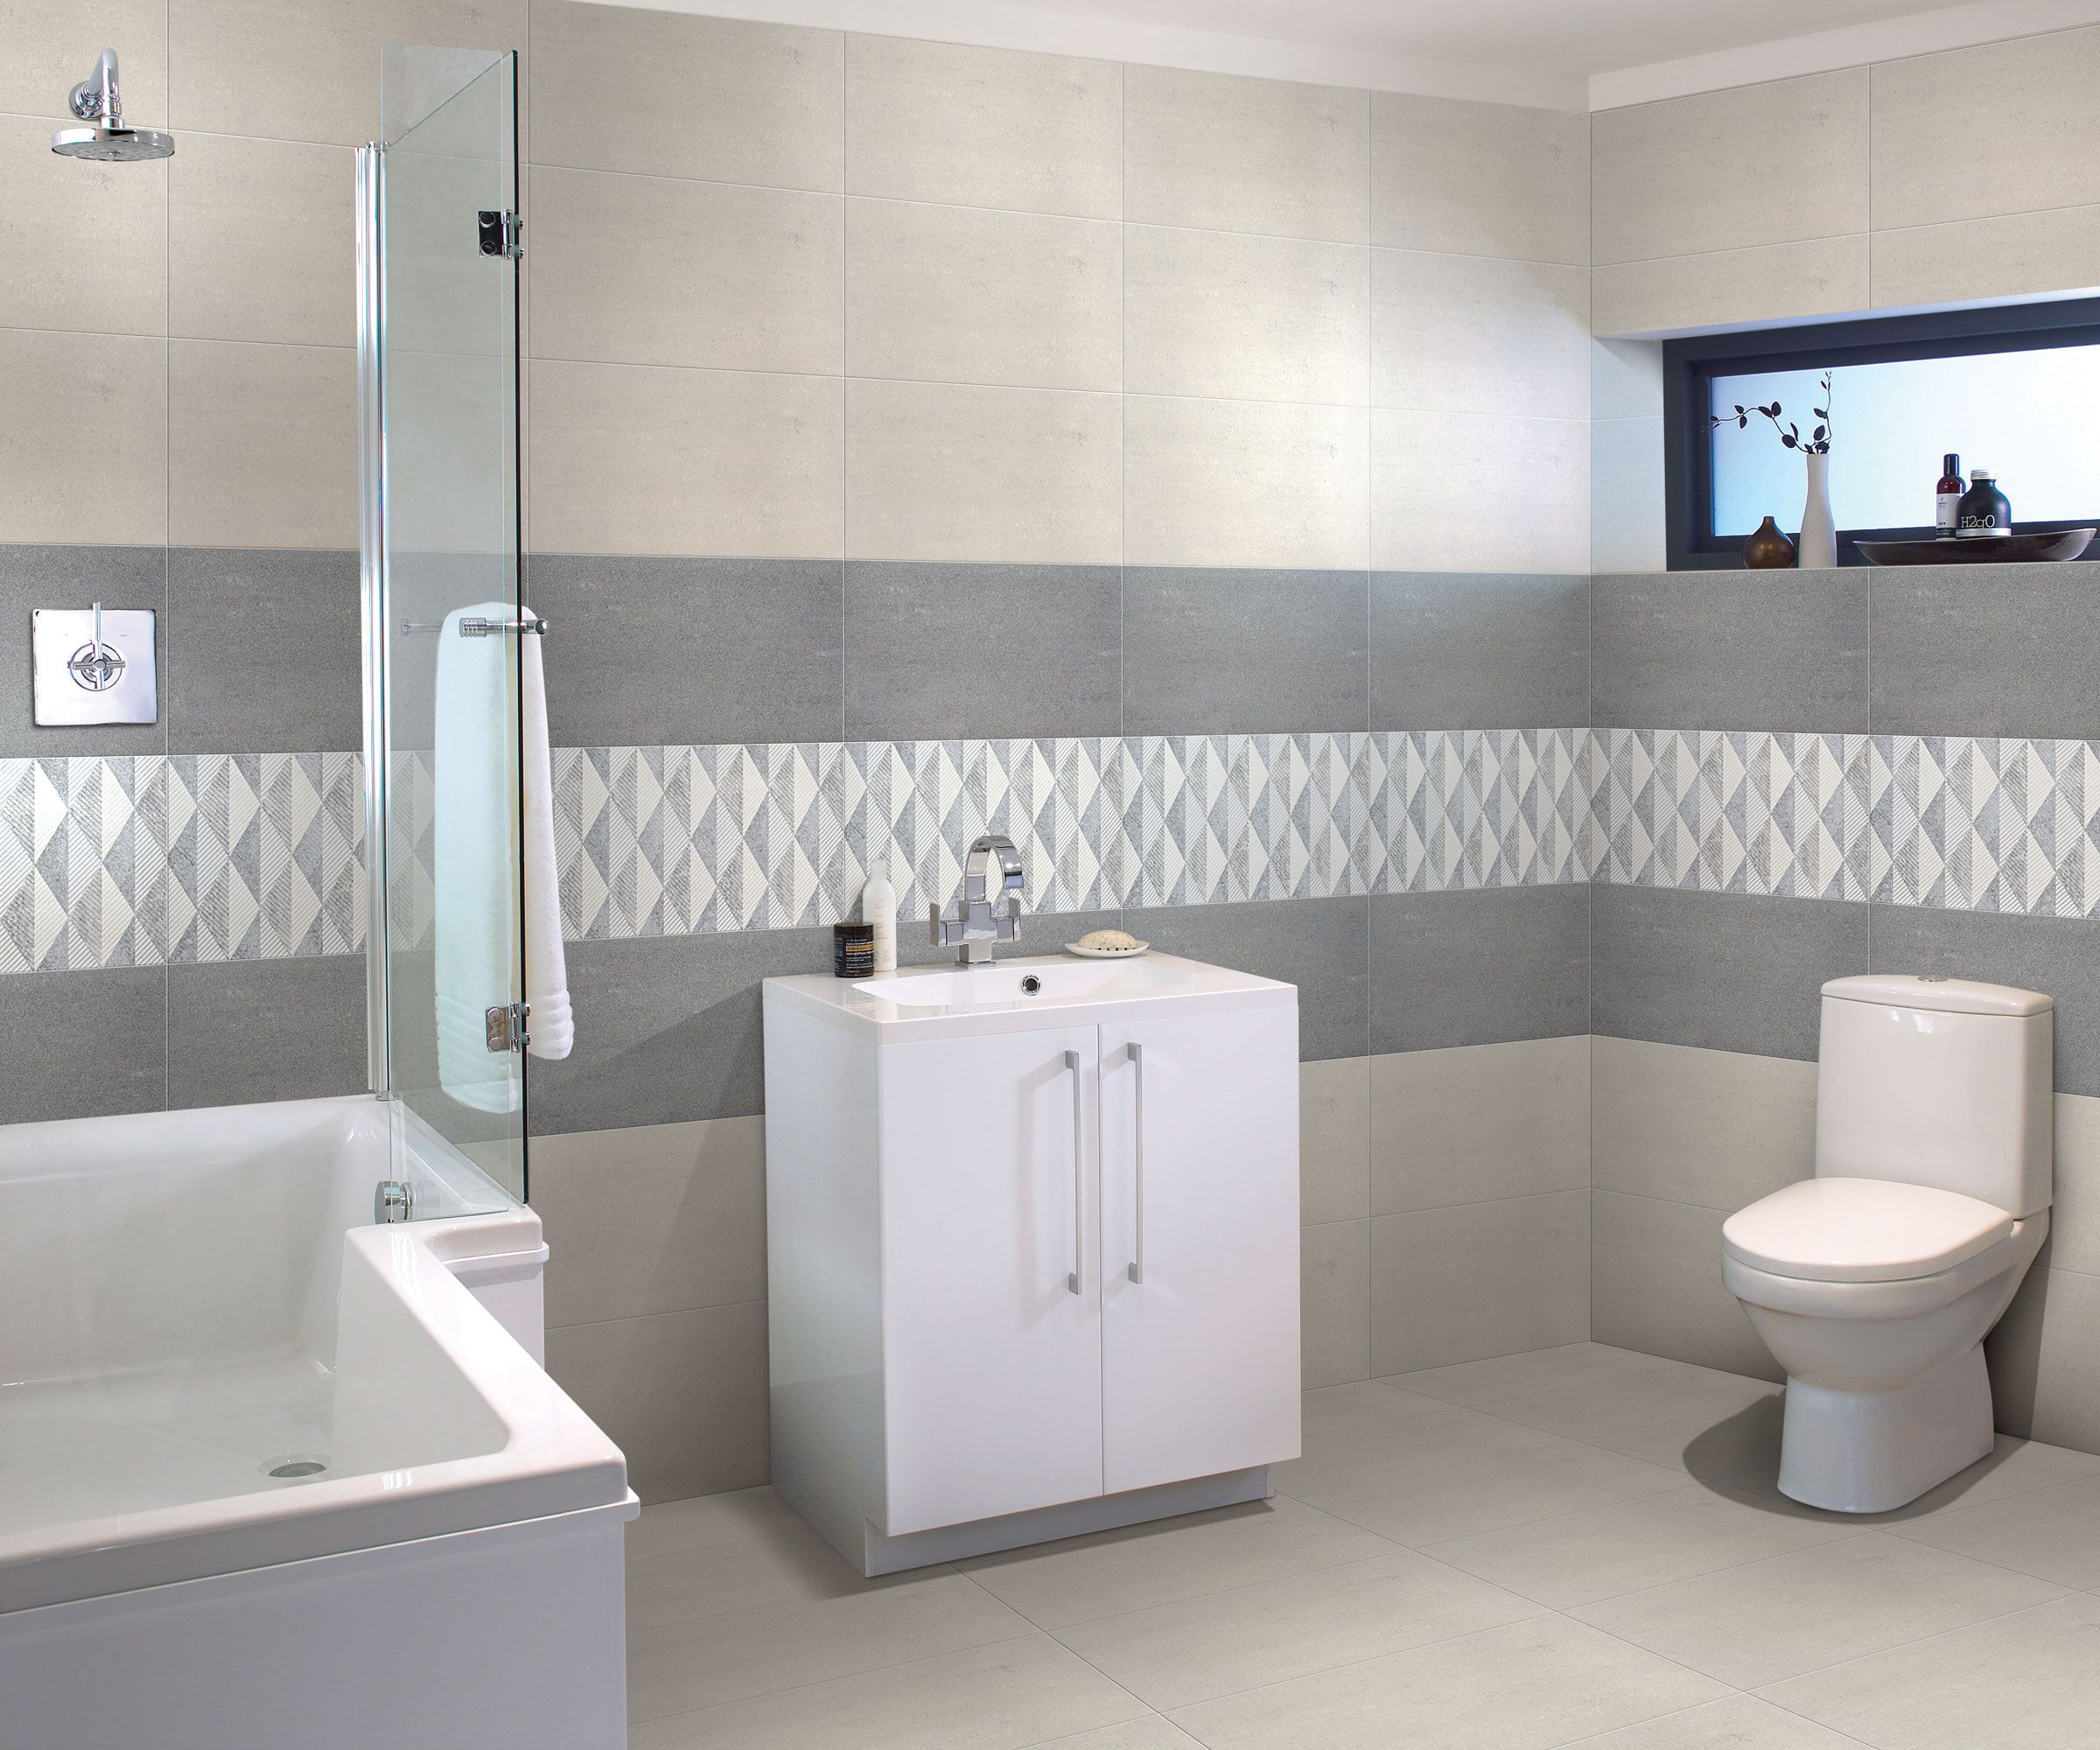 Buy designer floor wall tiles for bathroom bedroom for Office bathroom ideas